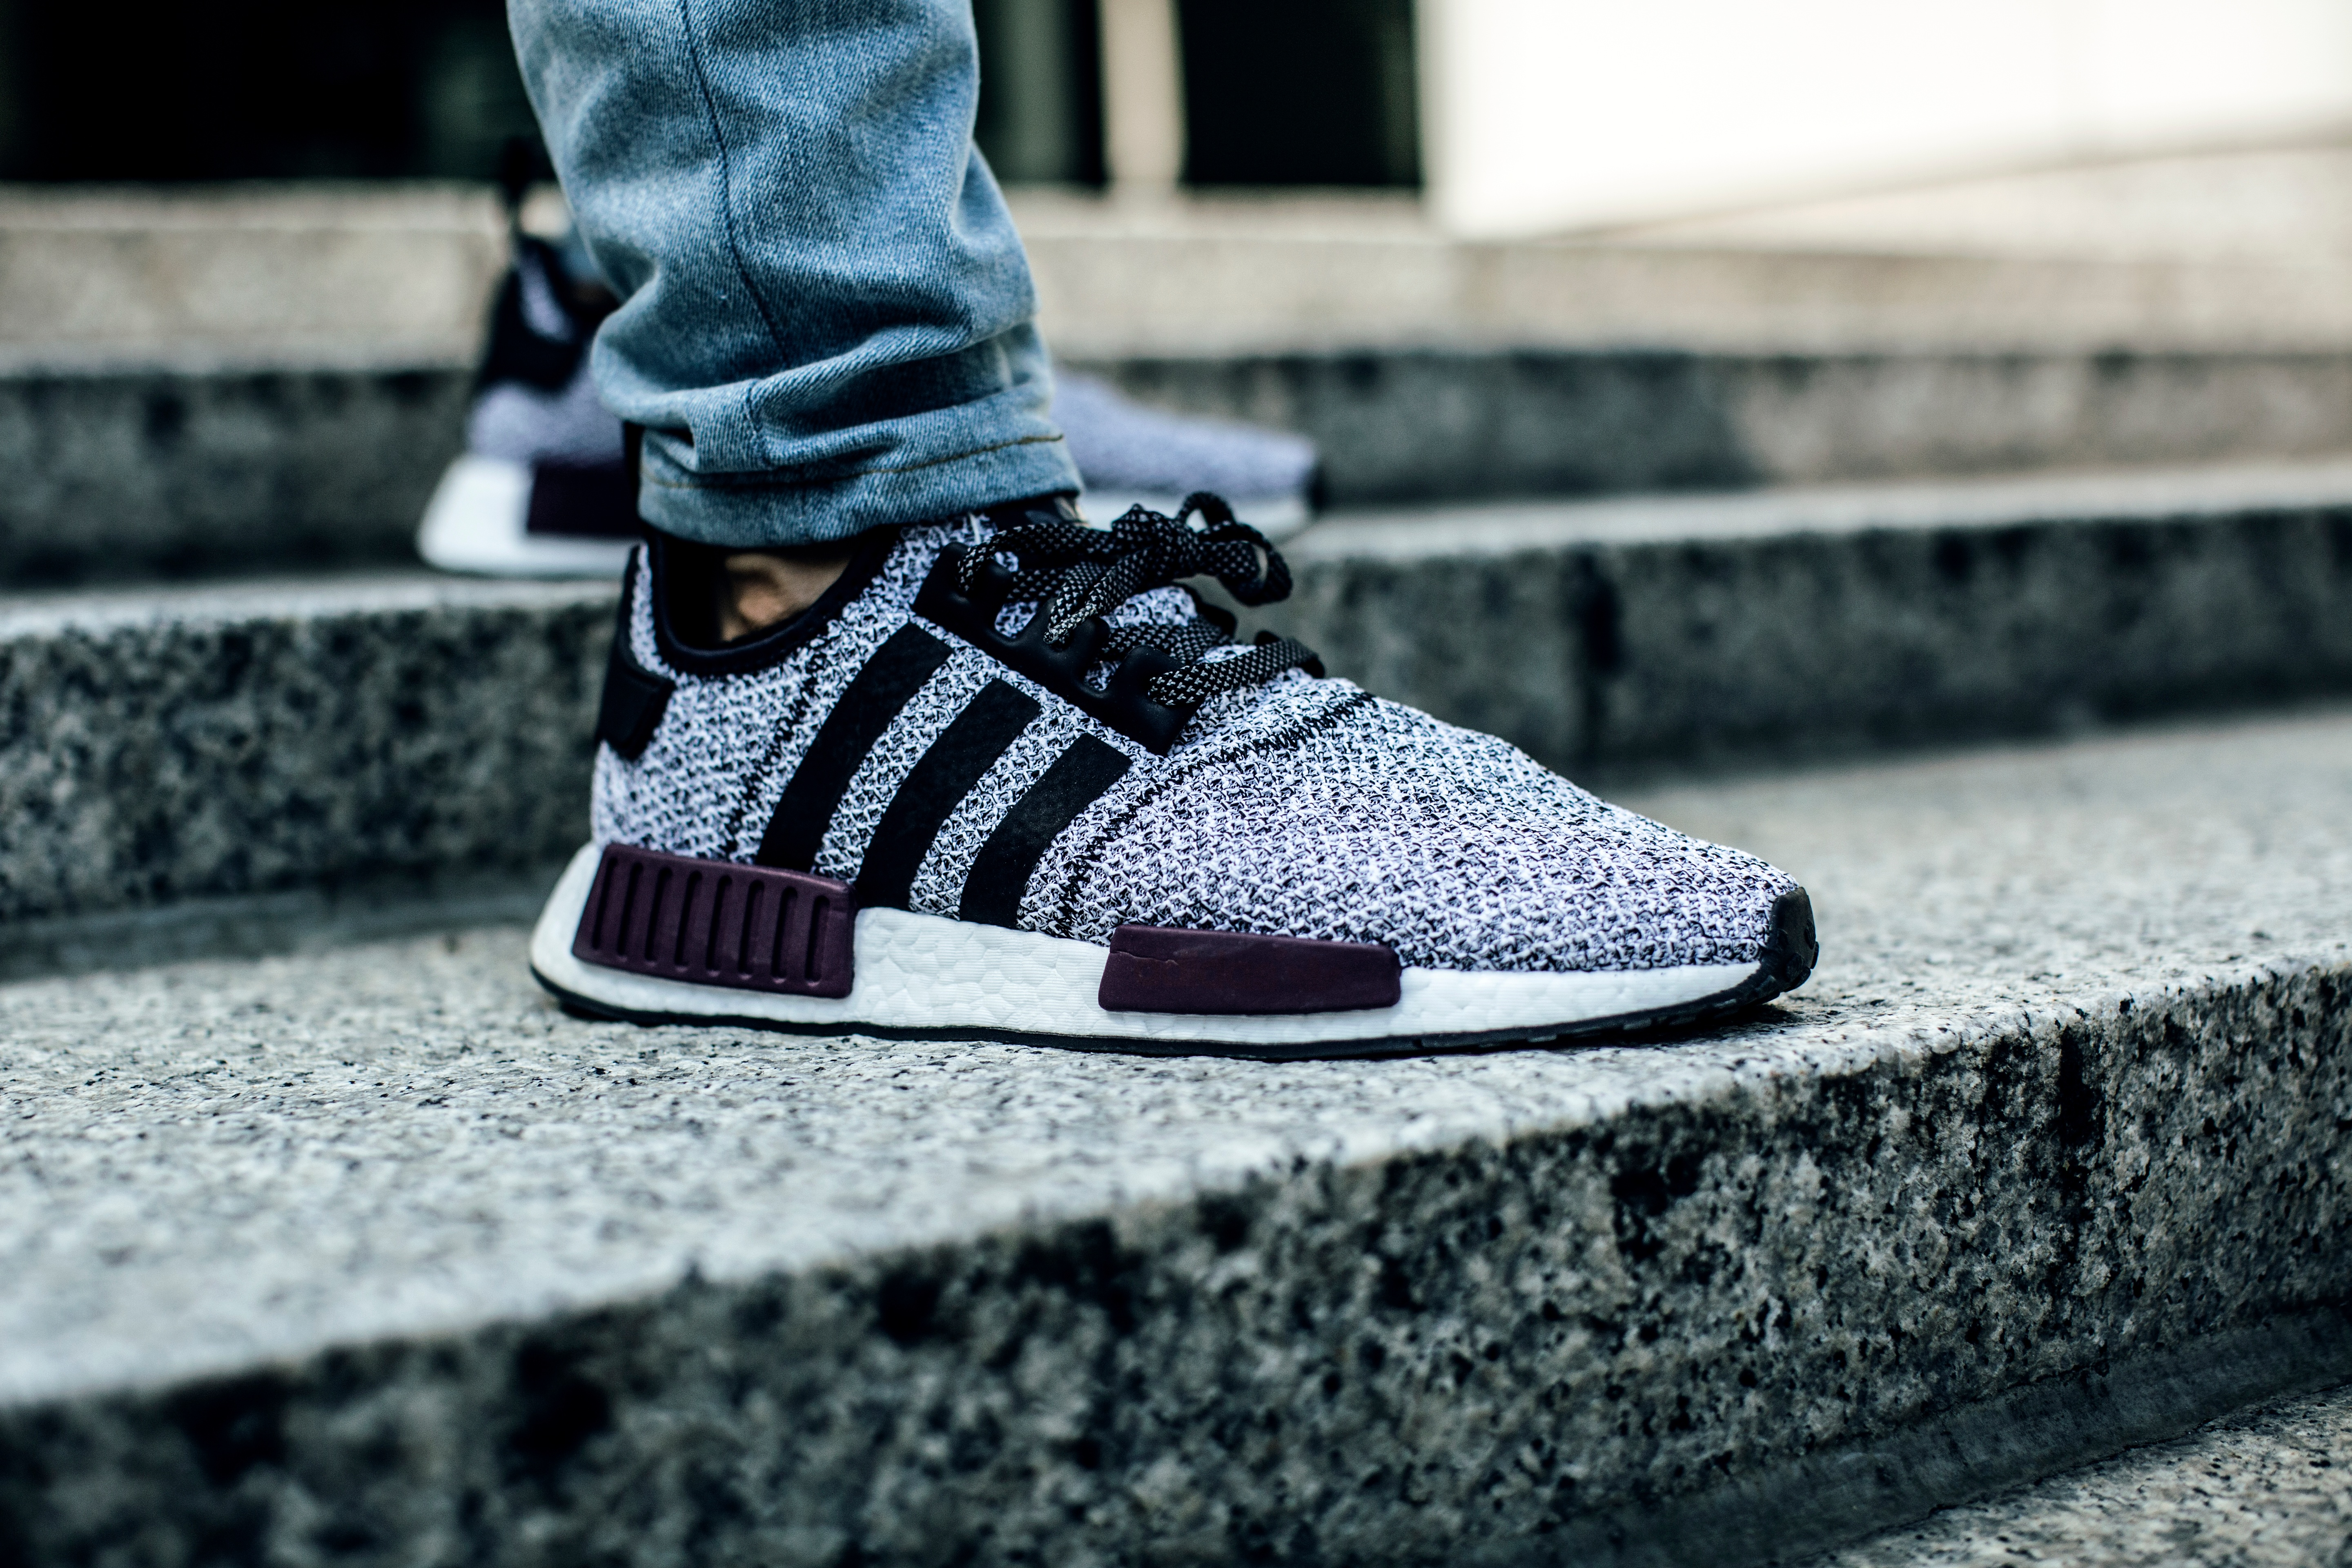 132466 Screensavers and Wallpapers Adidas for phone. Download Adidas, Miscellanea, Miscellaneous, Legs, Sneakers, Stairs, Ladder, Jeans, Footwear pictures for free